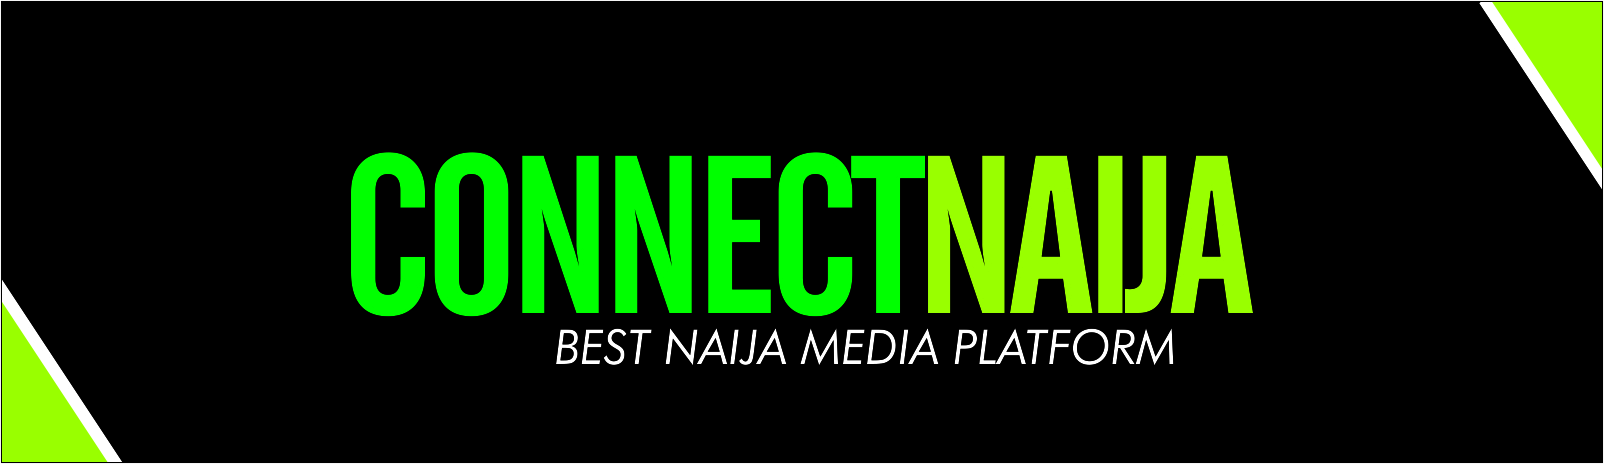 Connectnaija v3.0